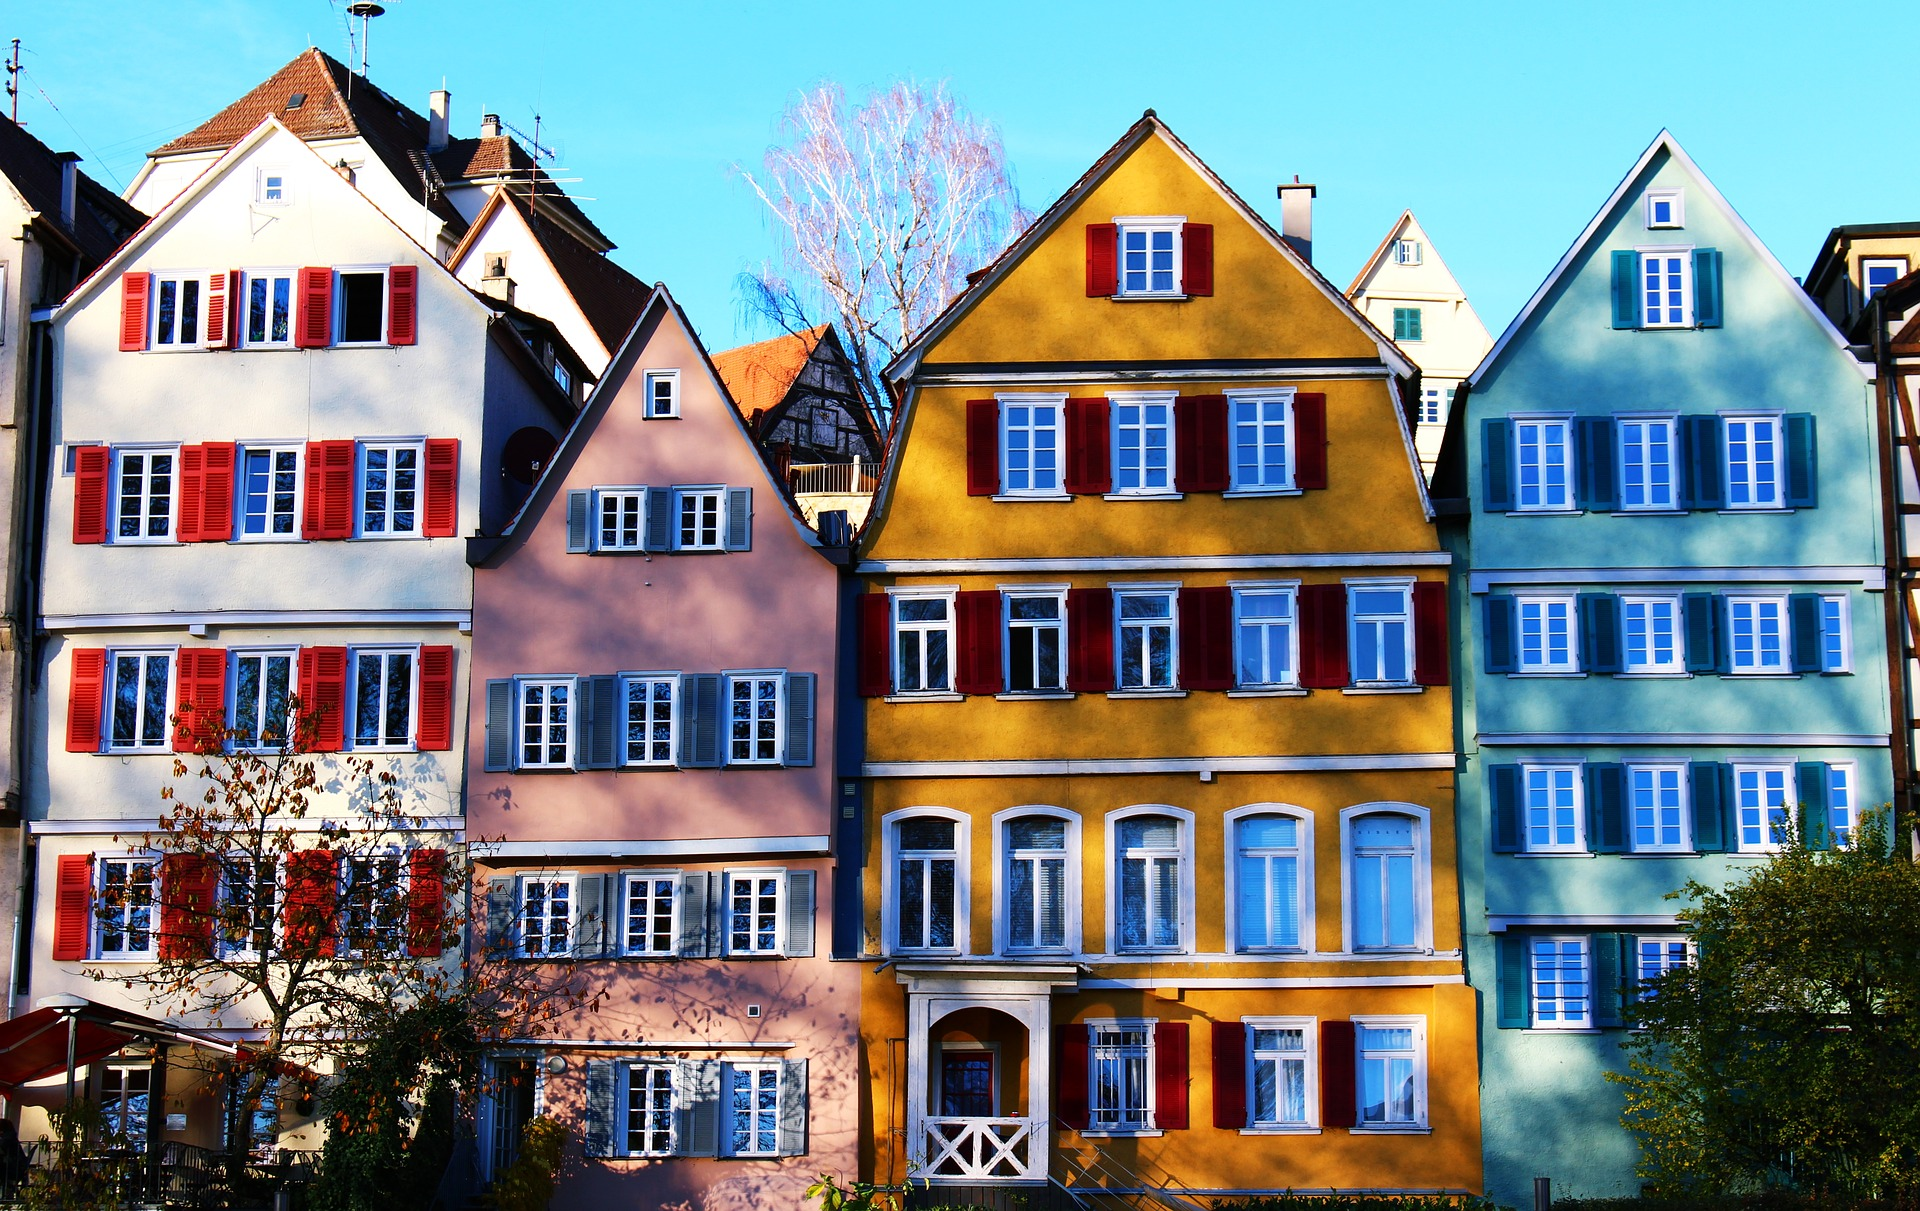 bright houses lined up on the stree